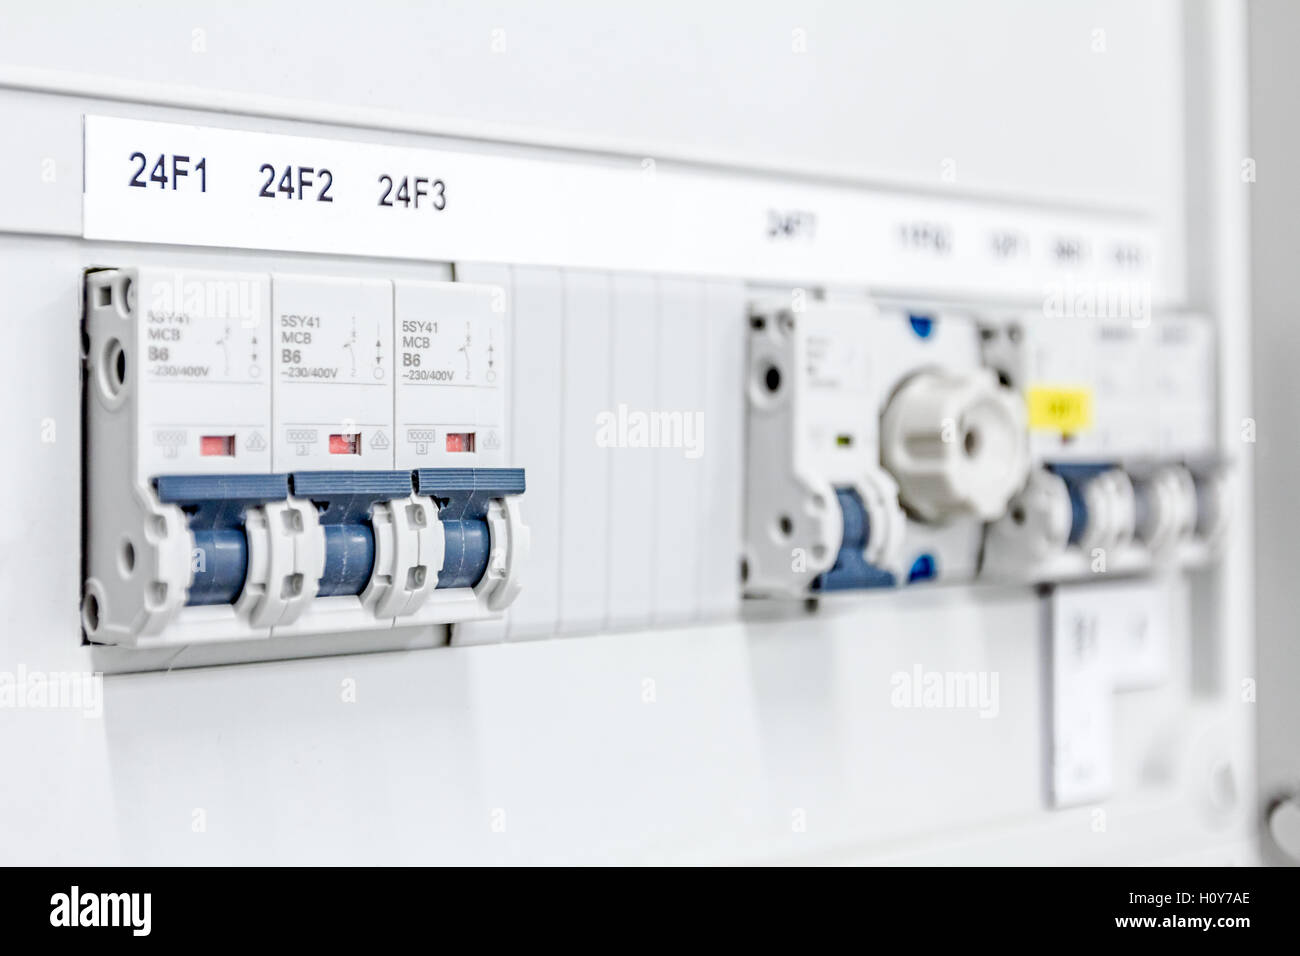 Electrical Distribution Board Stock Photos Wiring Panel Automatic Fuse Connector In Power Lines Located Inside Of Switch Control